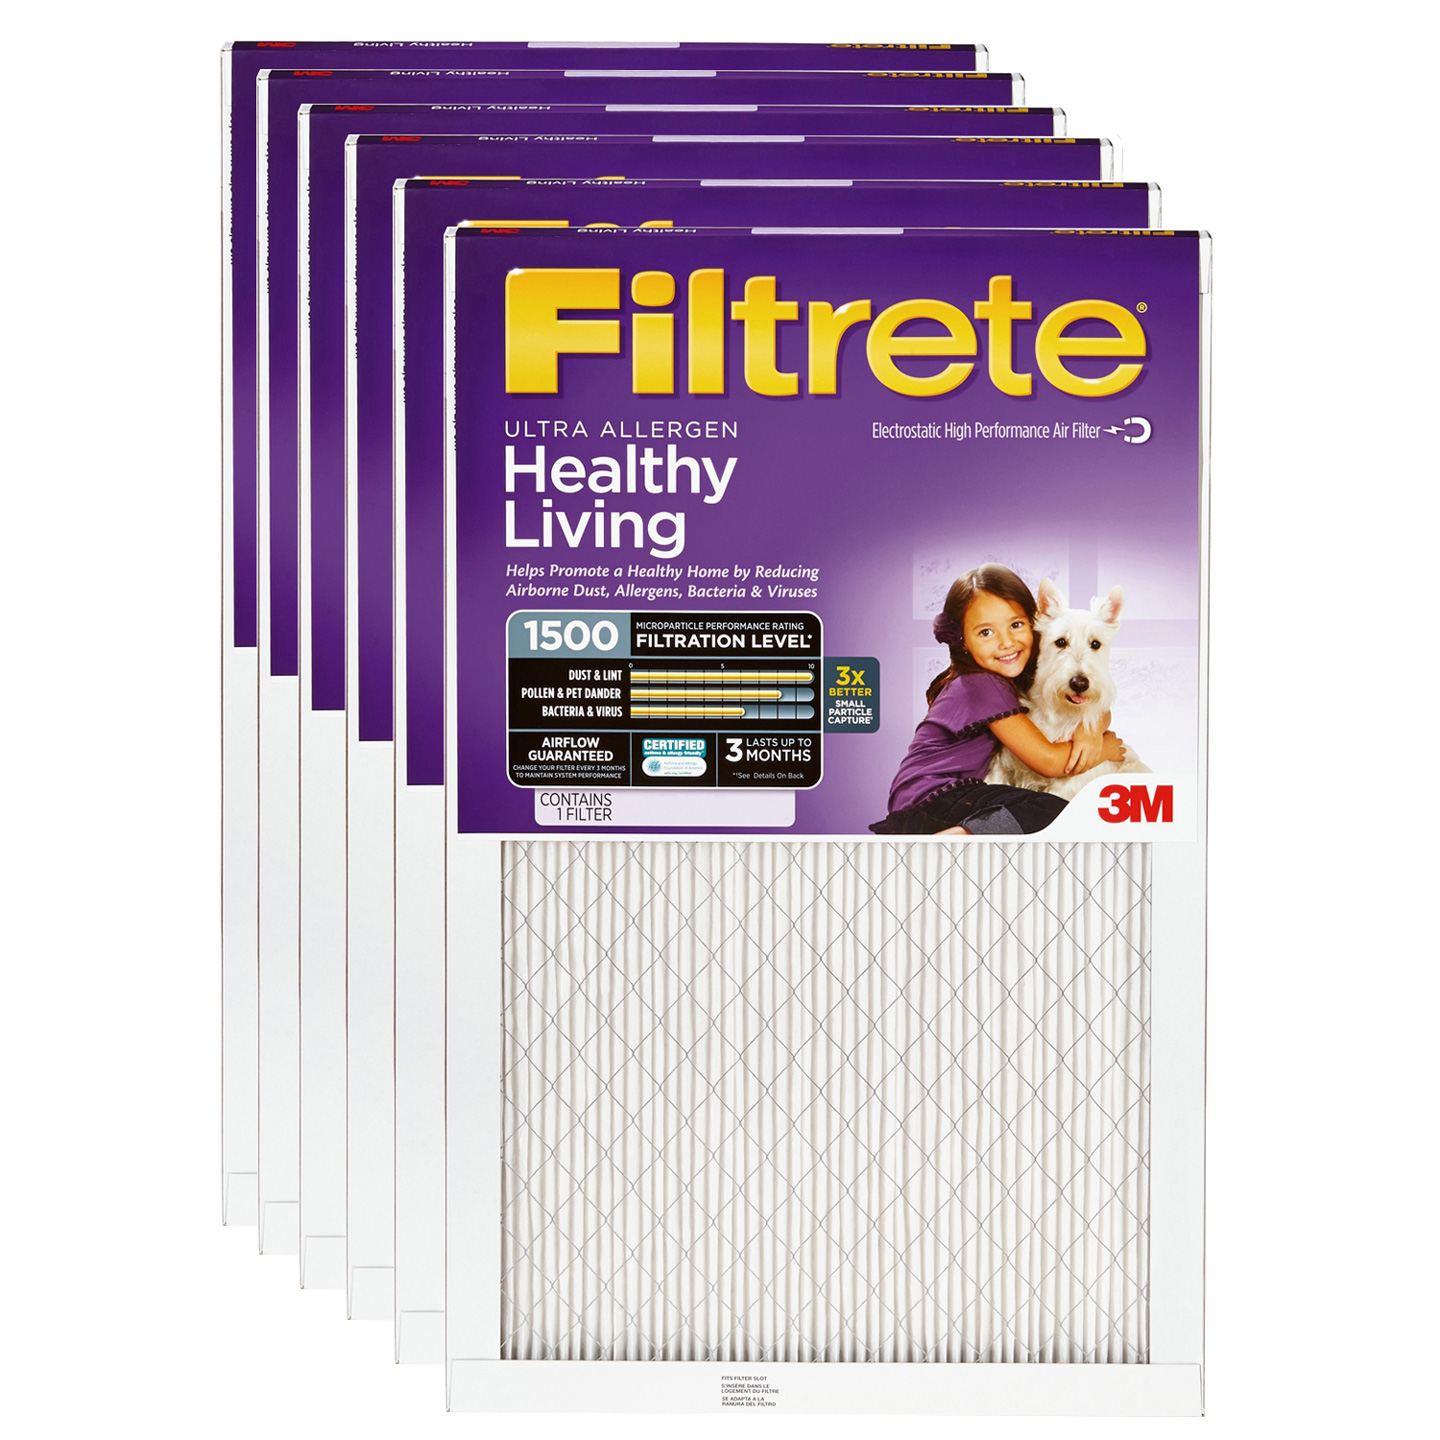 10x20x1 3M Filtrete Ultra Allergen Filter (6-Pack) FILTRETE_ULTRA_10x20x1_6_PACK